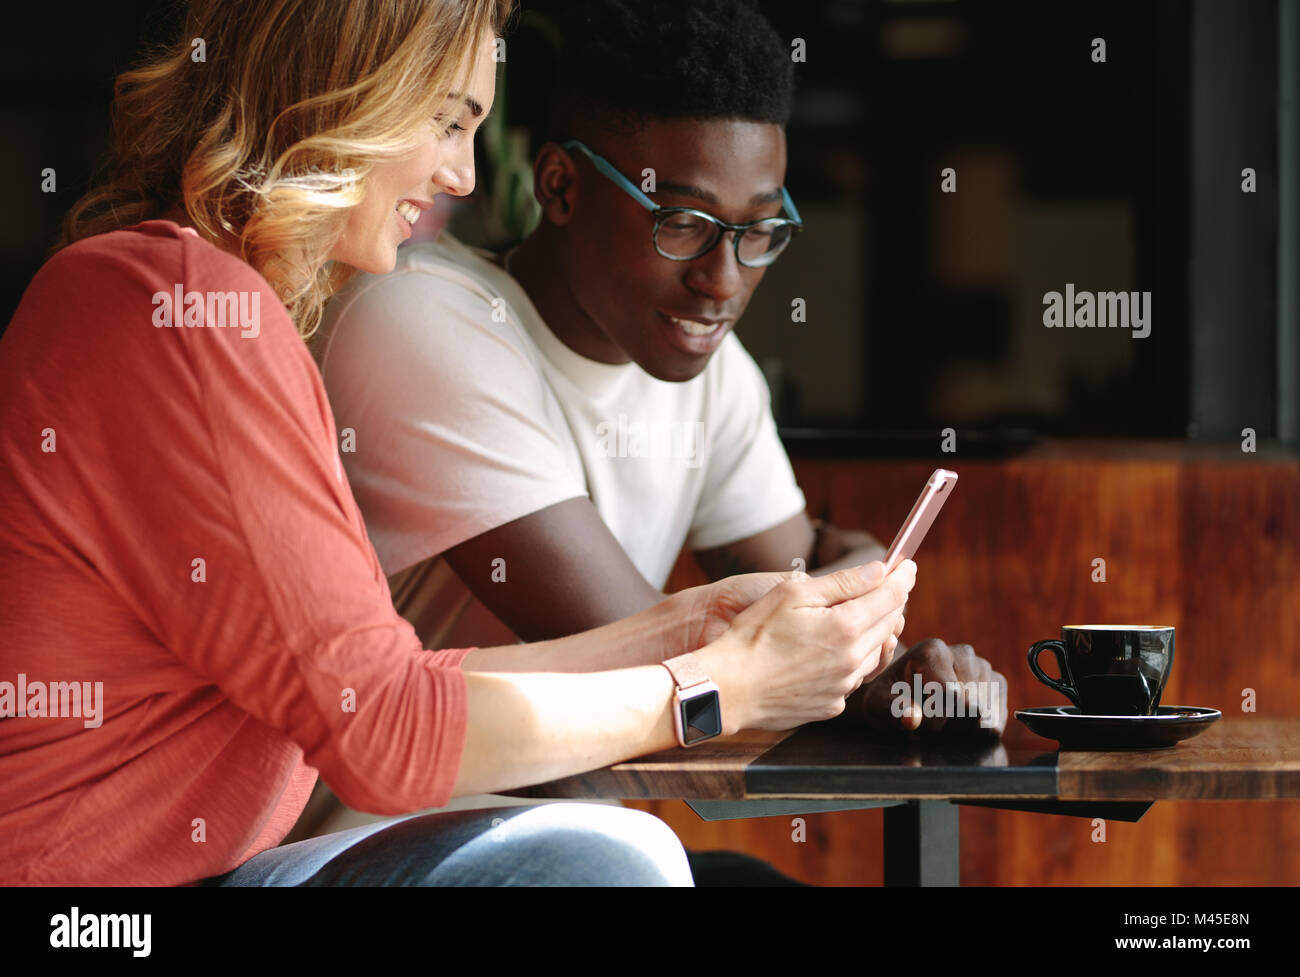 Couple sitting at a coffee shop using mobile phone. Man and woman sitting at a coffee table looking at a mobile - Stock Image